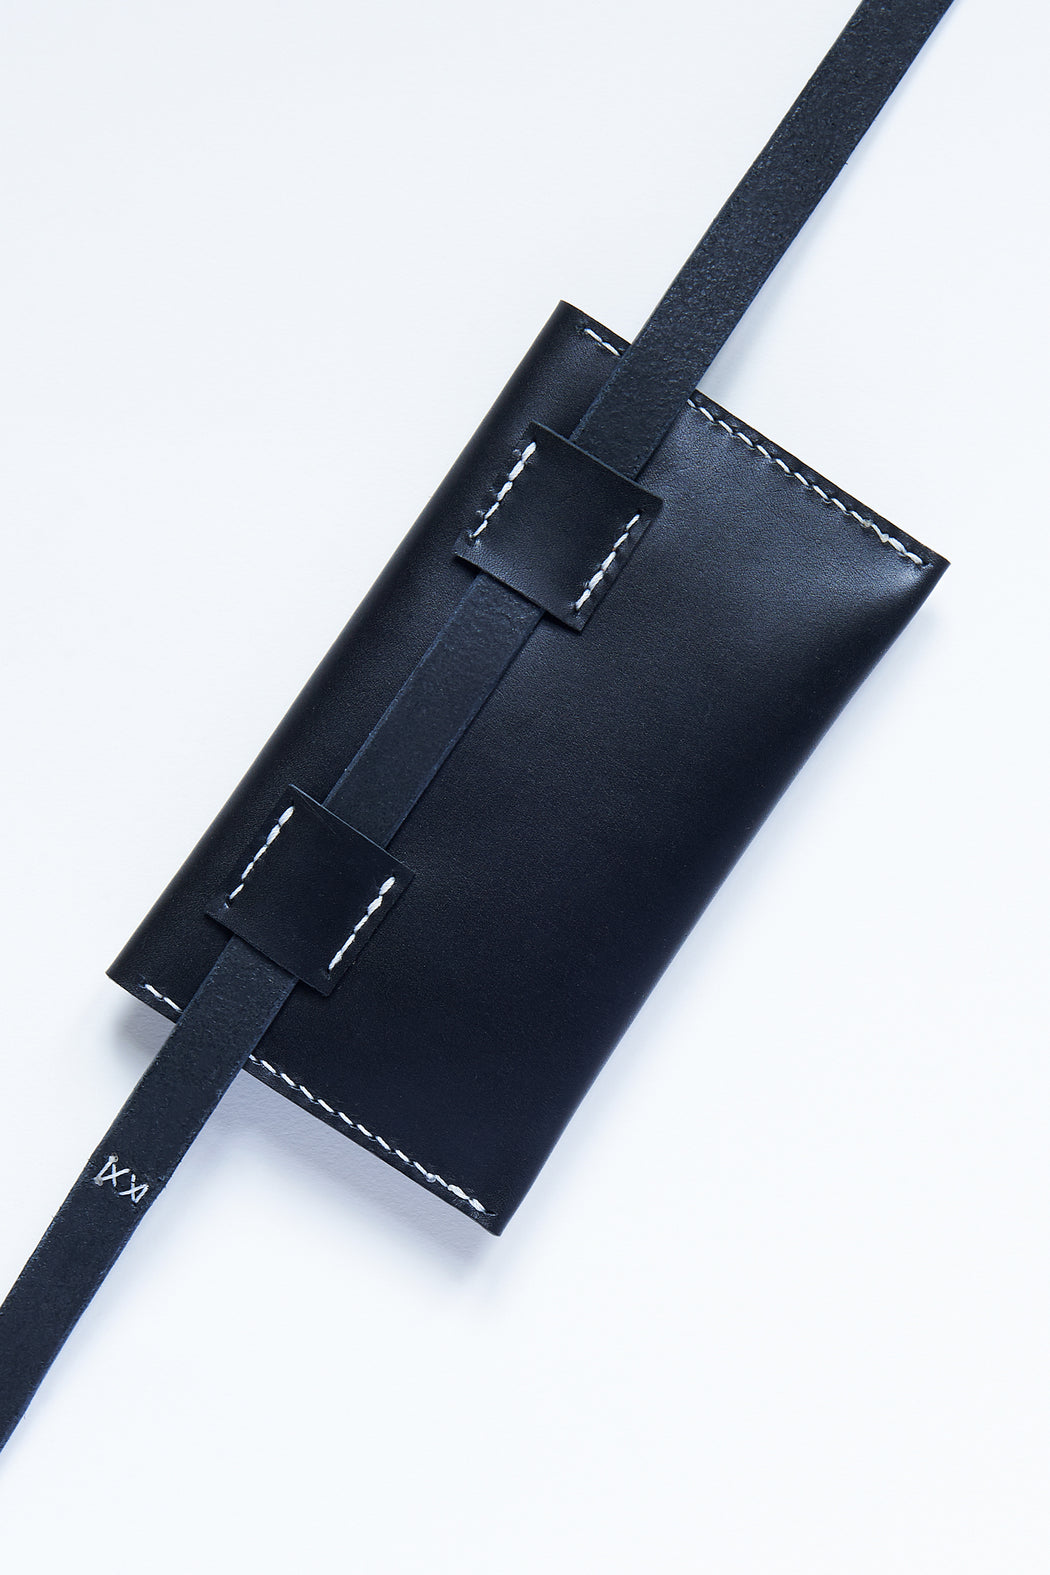 PM Leather Waist Pocket - Black